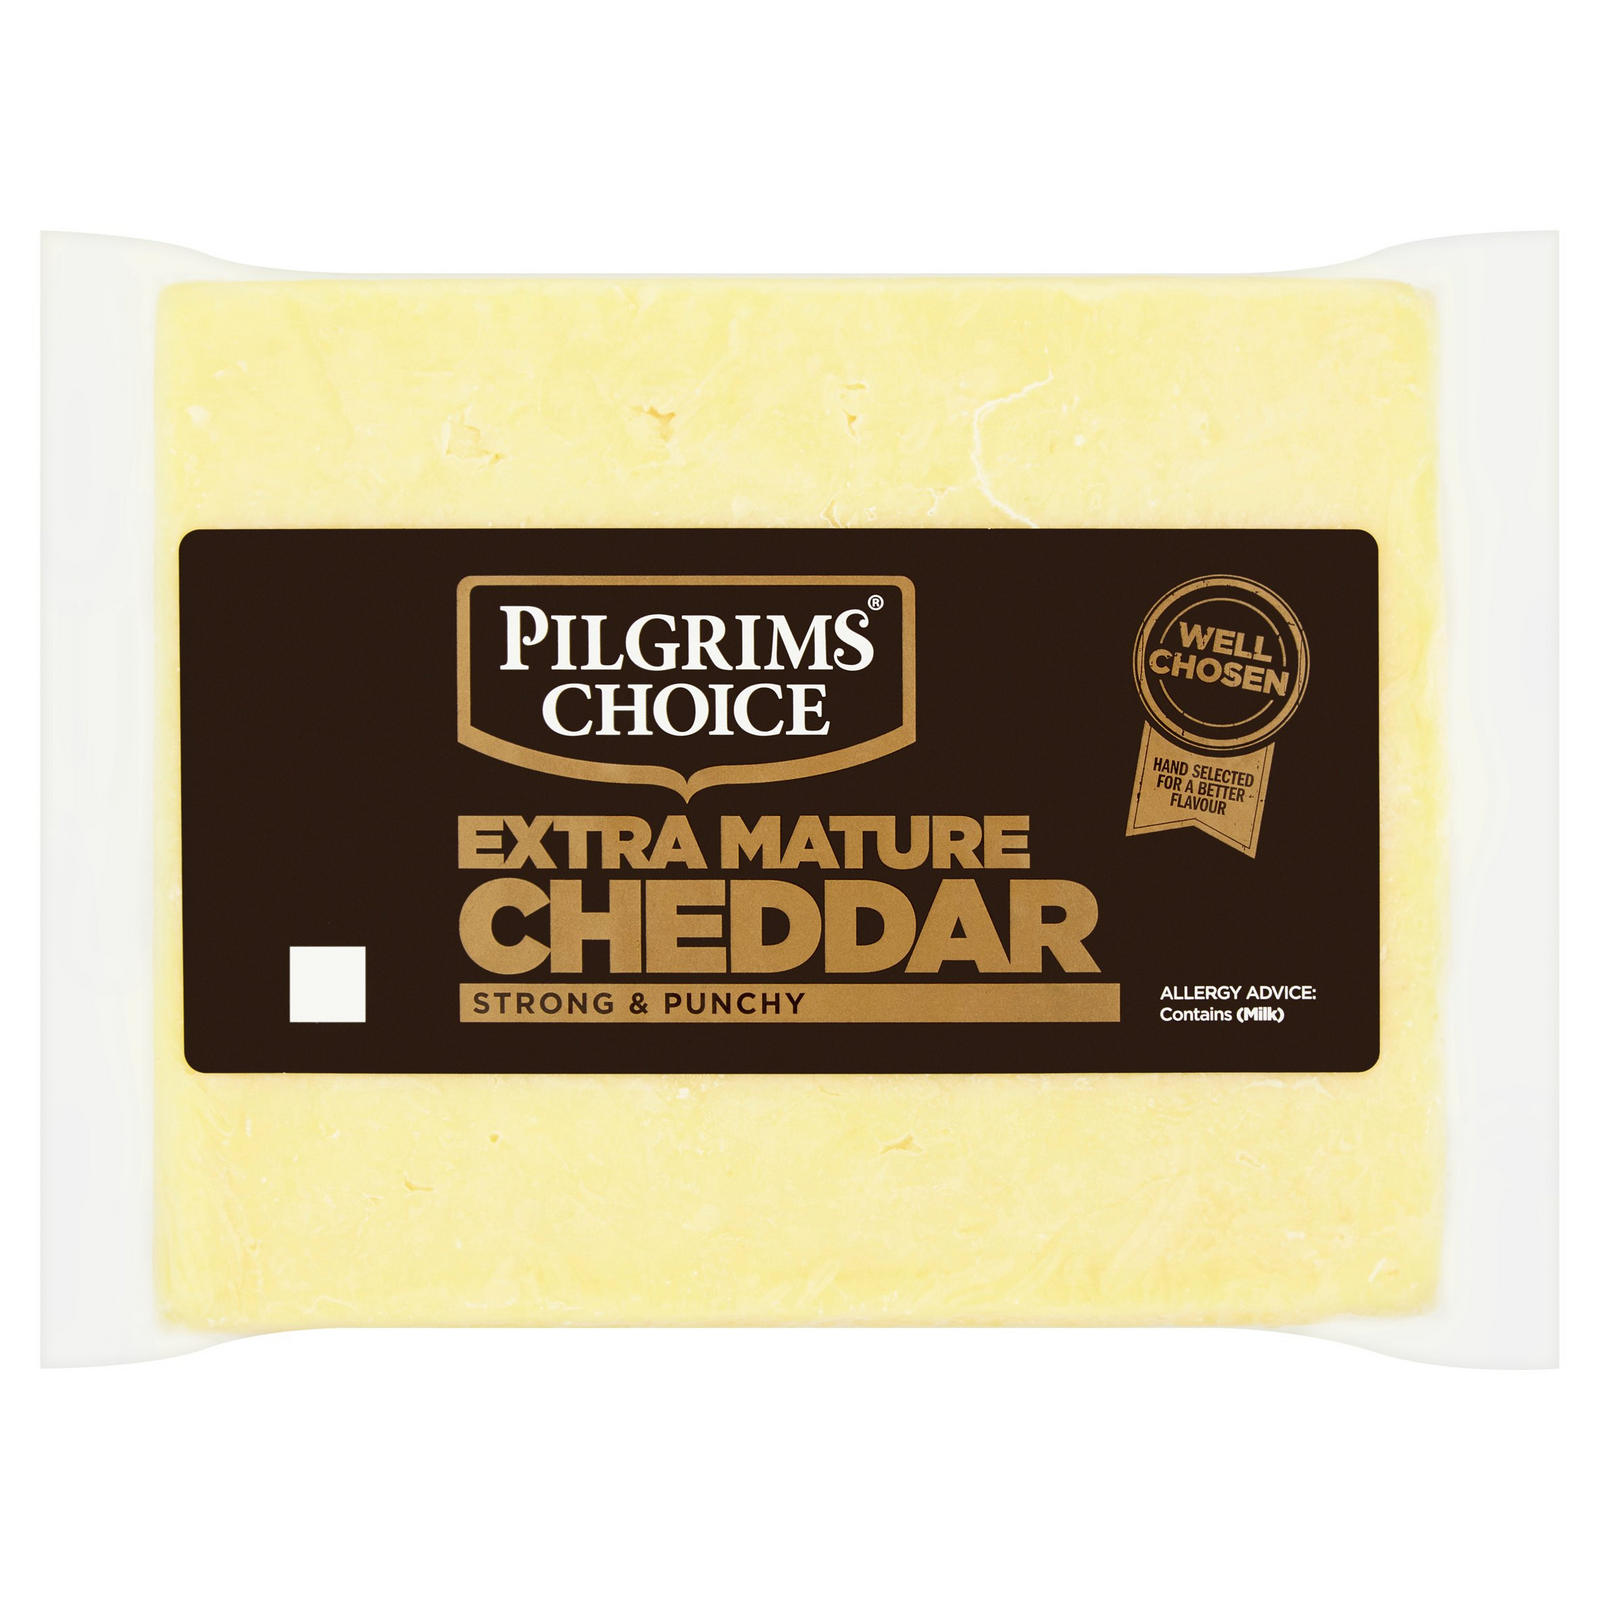 Pilgrims Choice Extra Mature Cheddar | Cheddar Cheese